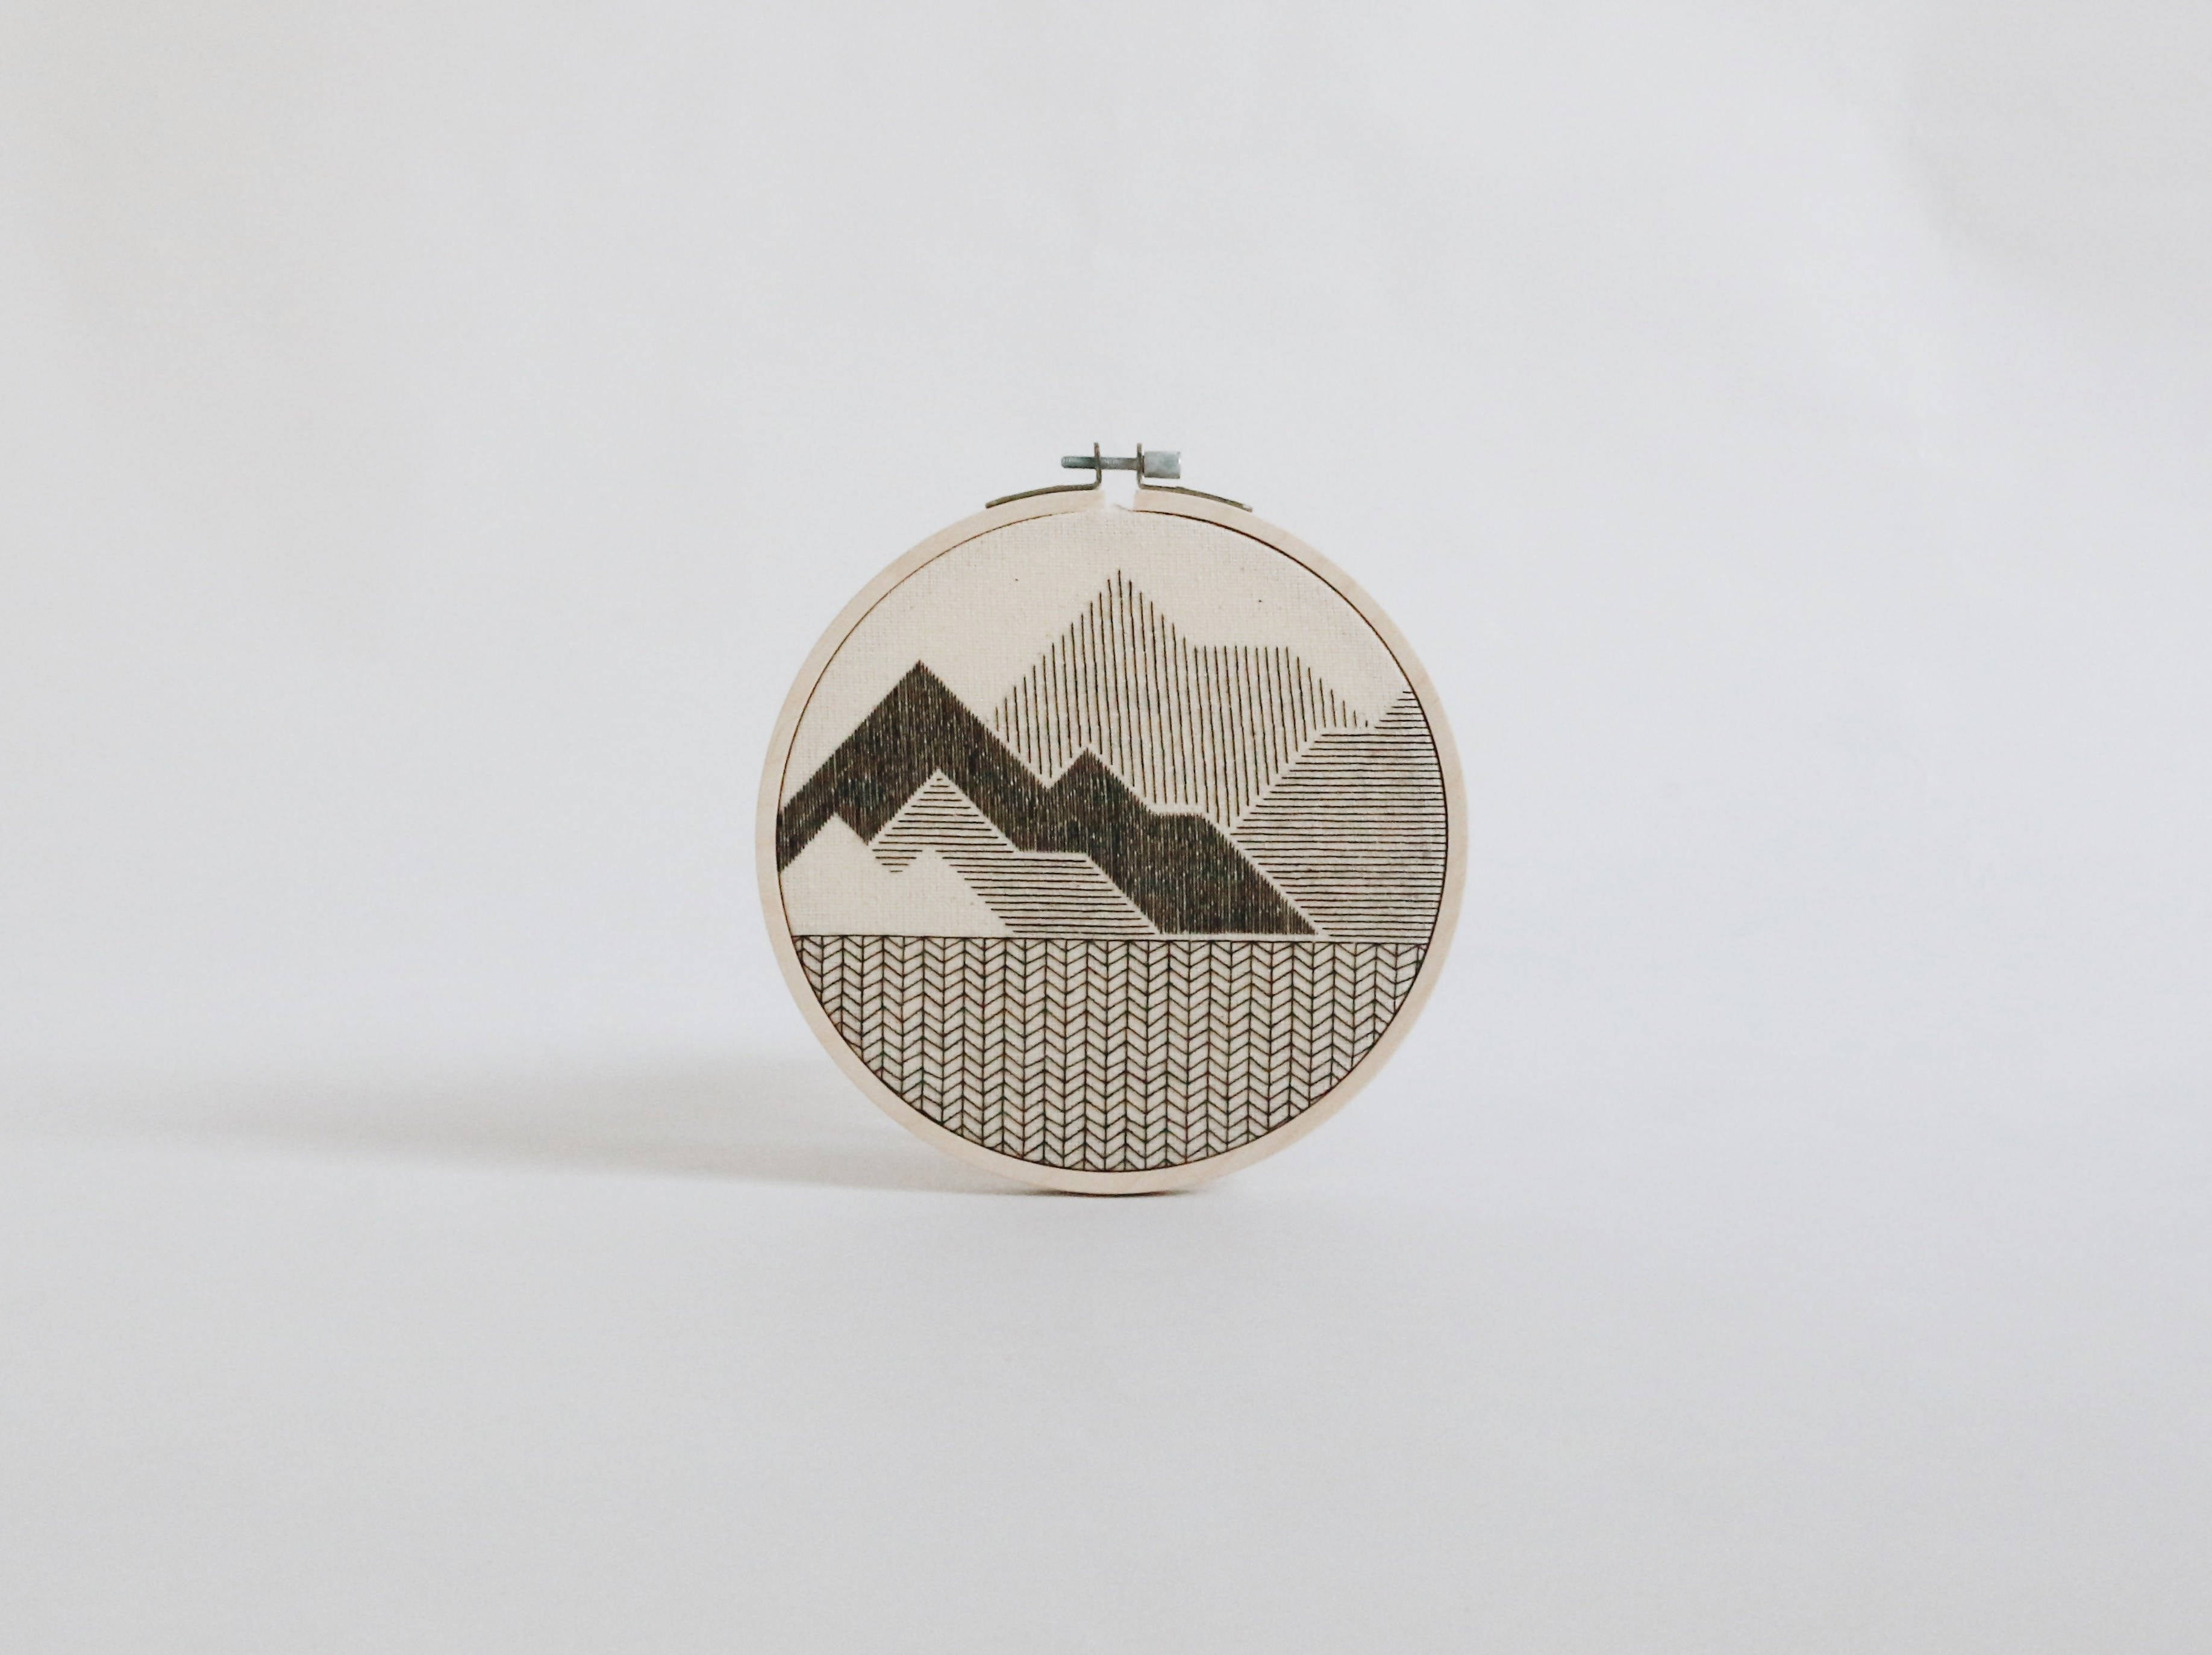 Mountain hand embroidery